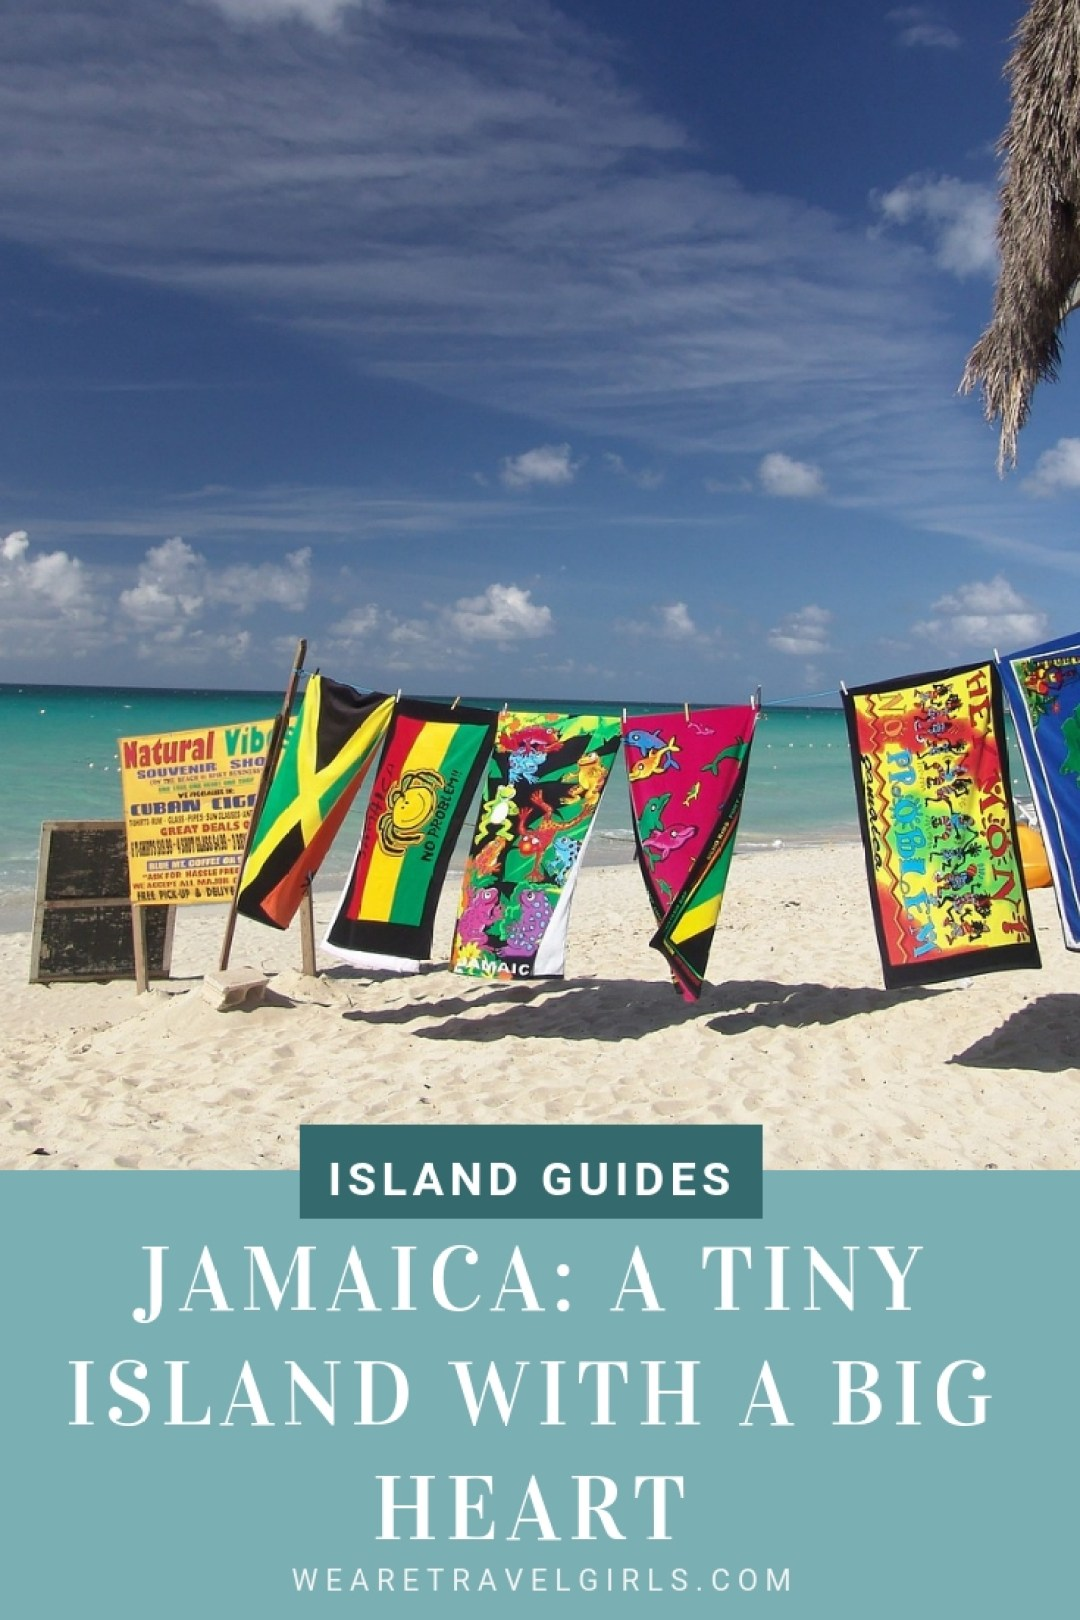 Jamaica: A Tiny Island with a Big Heart